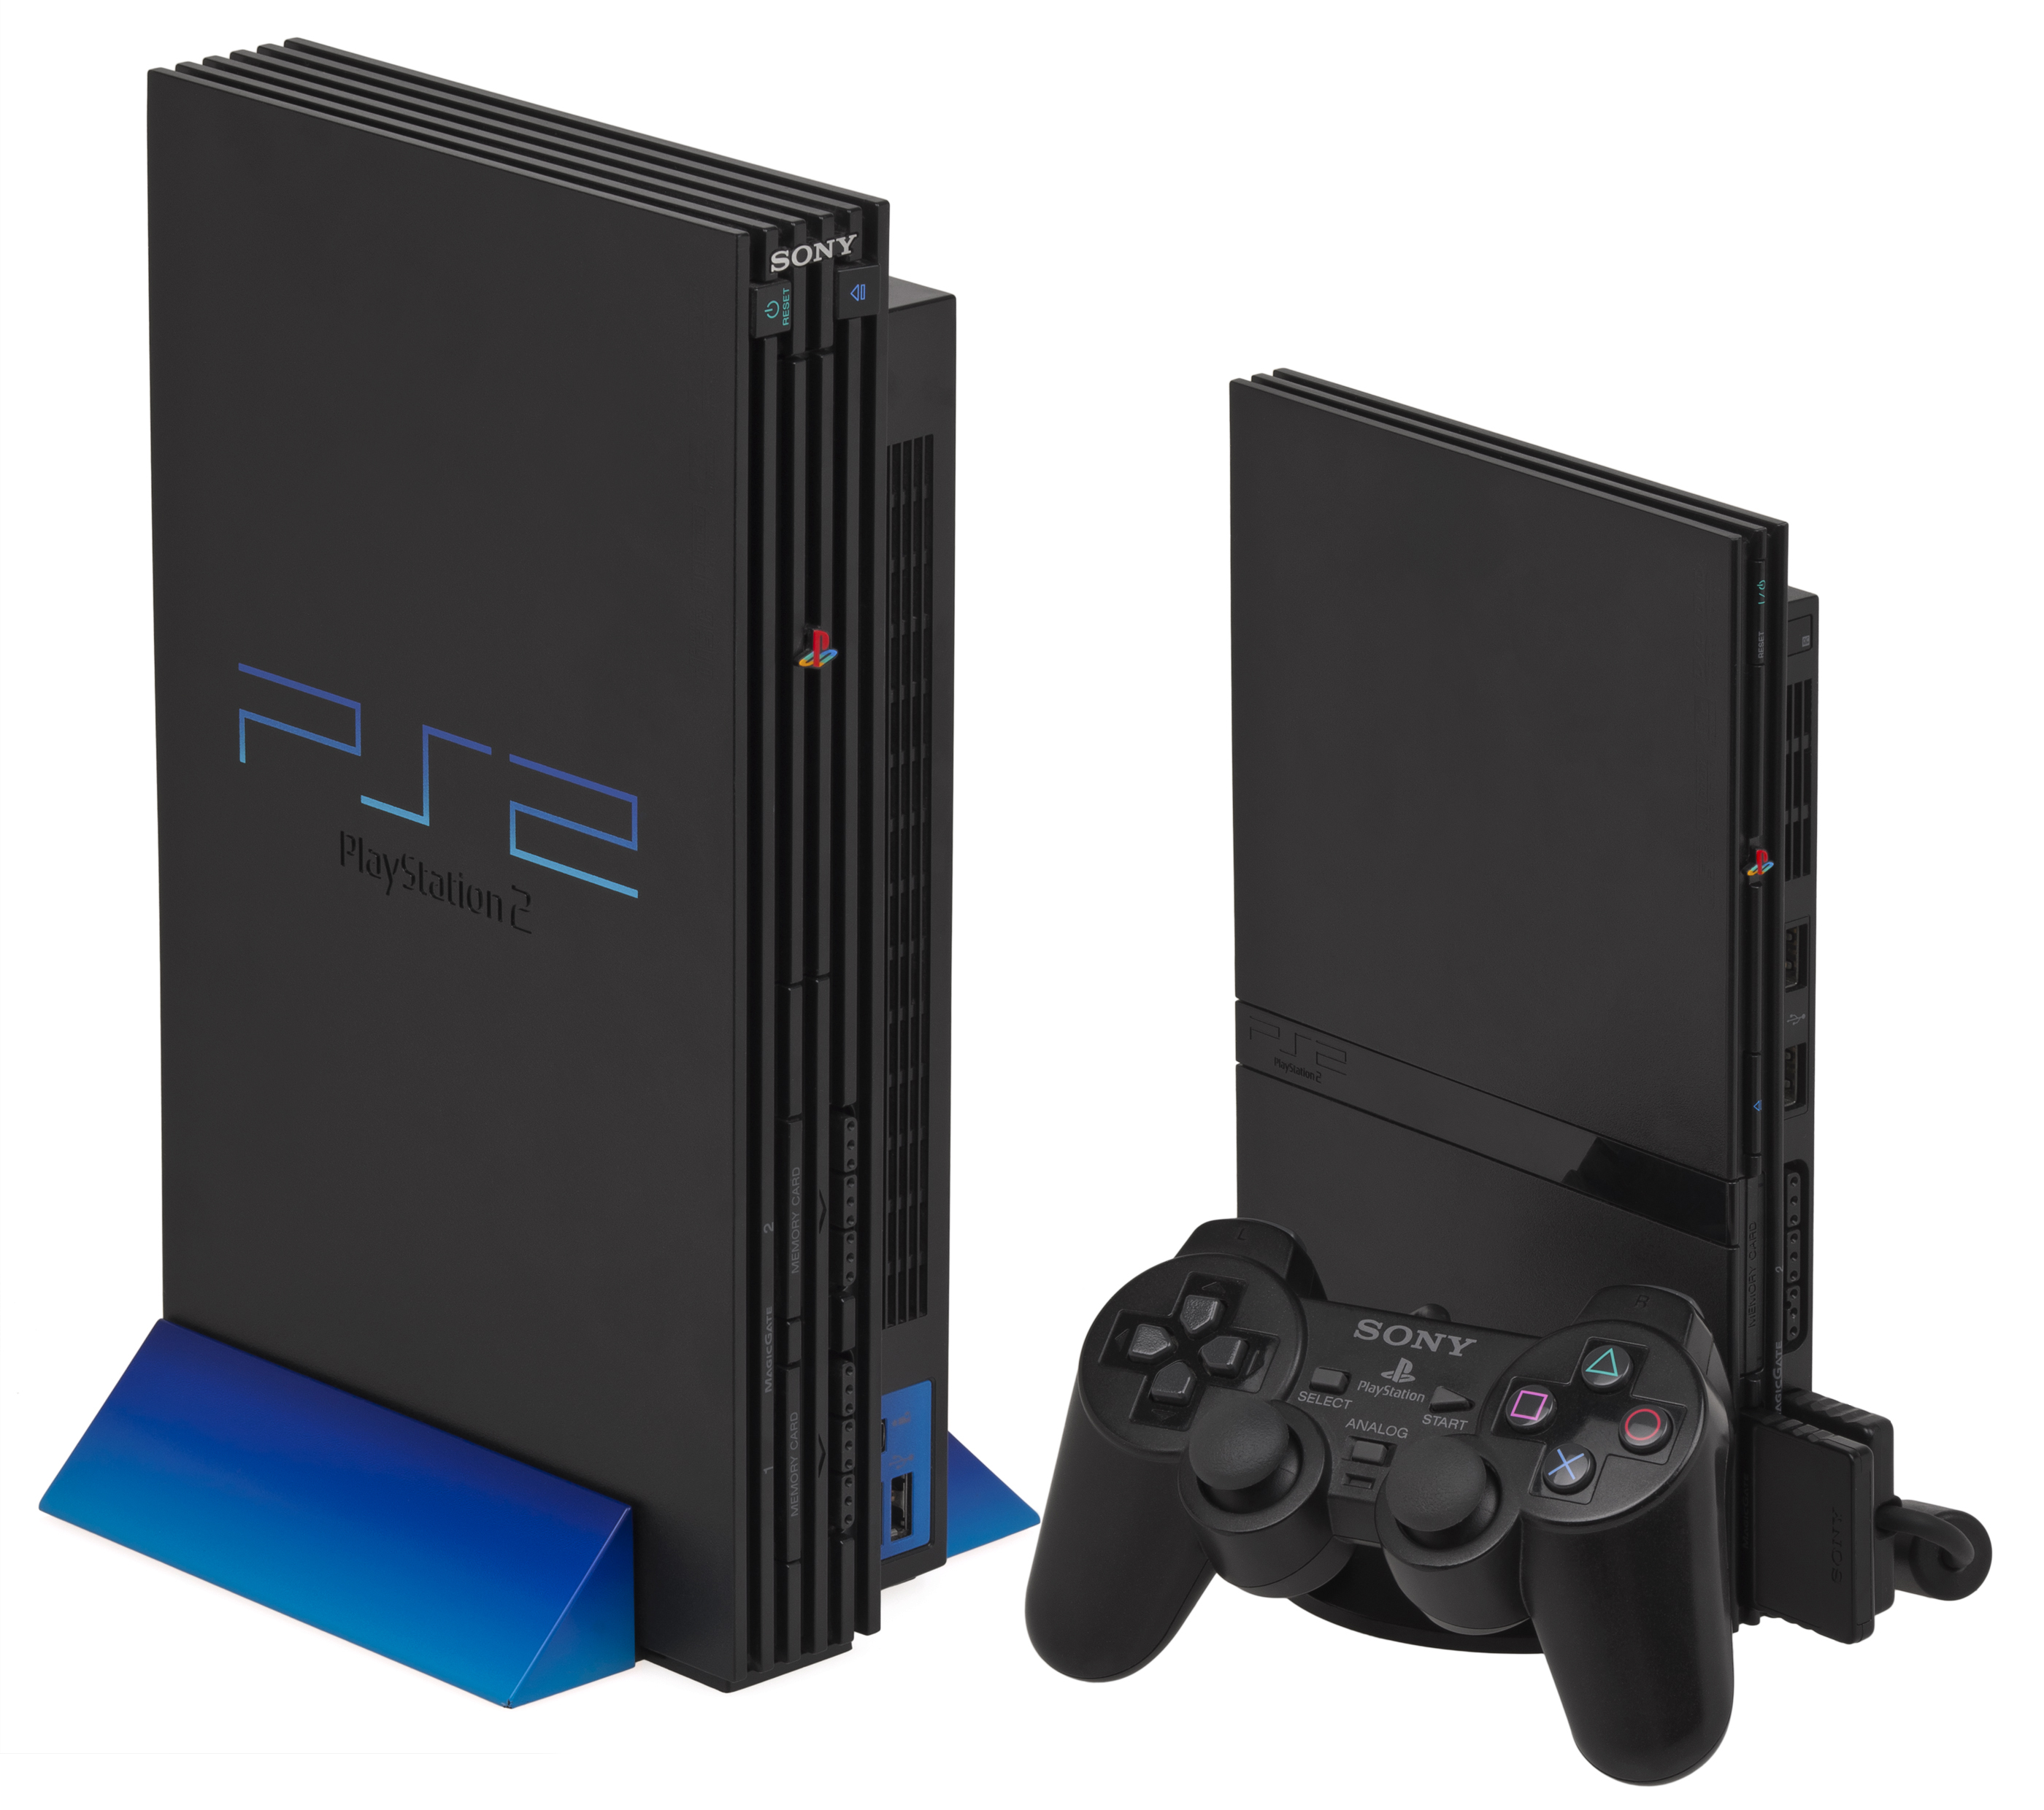 Game boy color list - Sony S Playstation 2 Is The Best Selling Game System Overall With Over 155 Million Units Worldwide